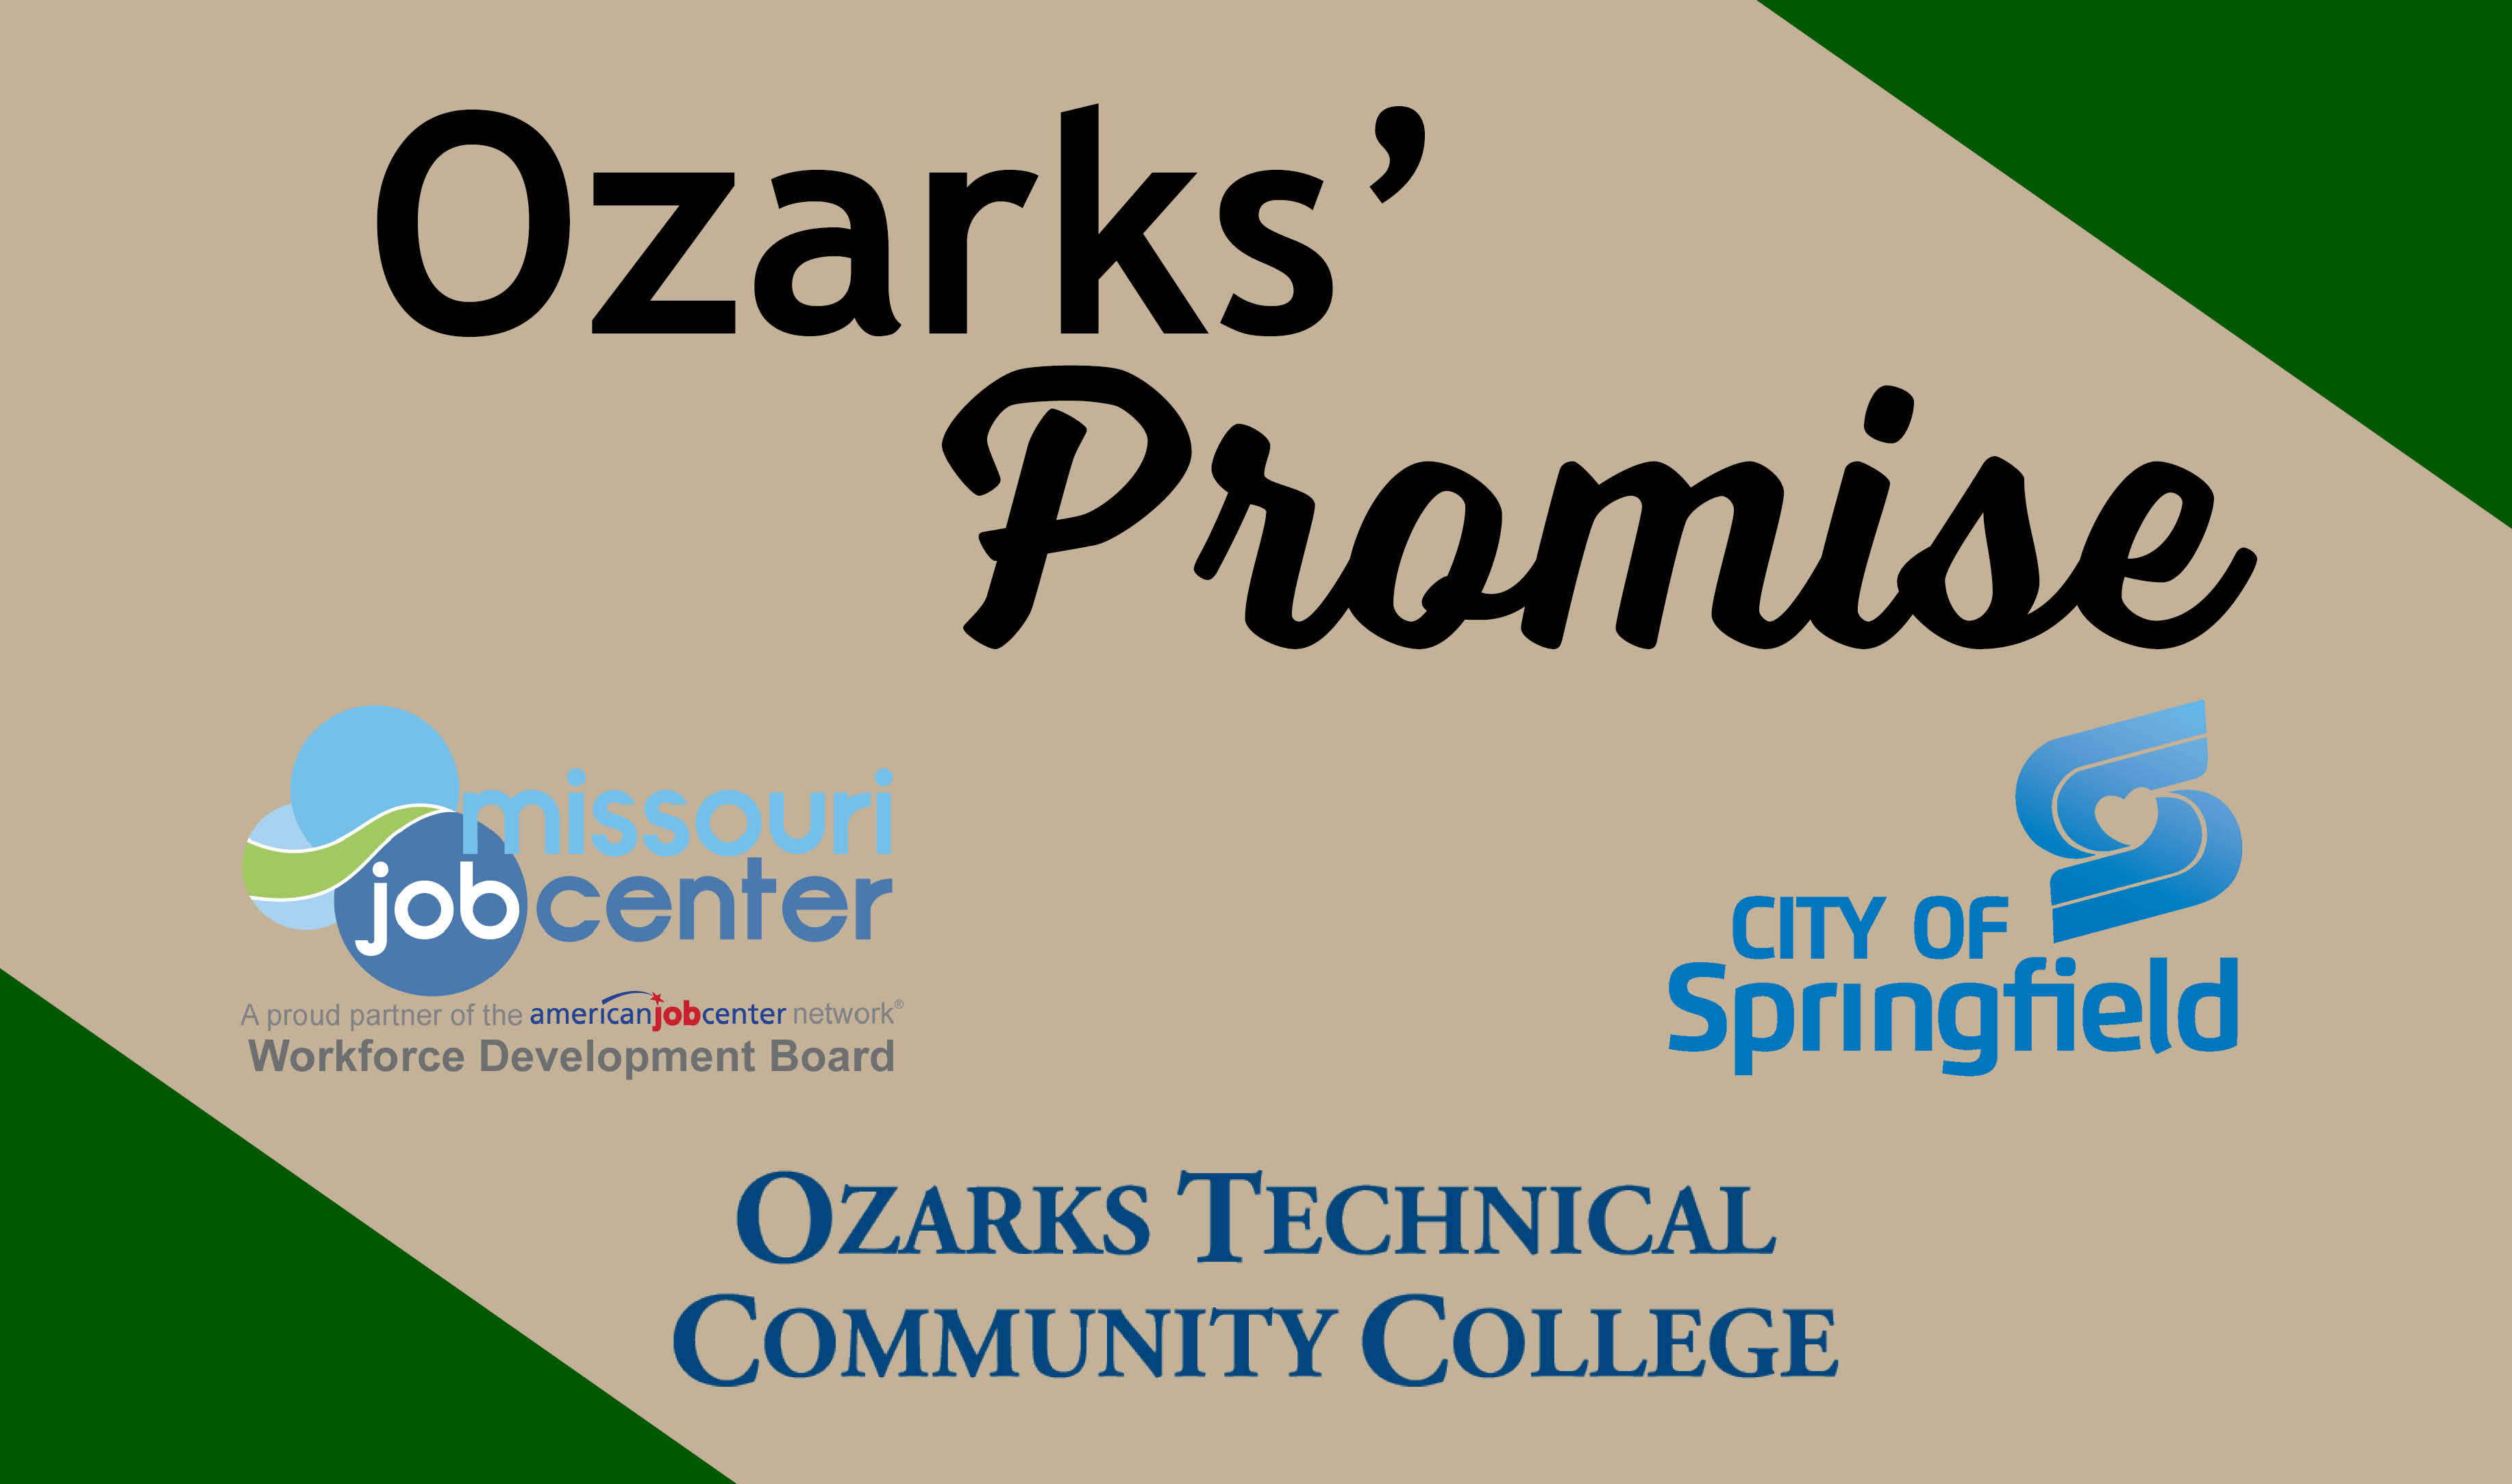 Ozarks Promise Press Release Photo.jpg